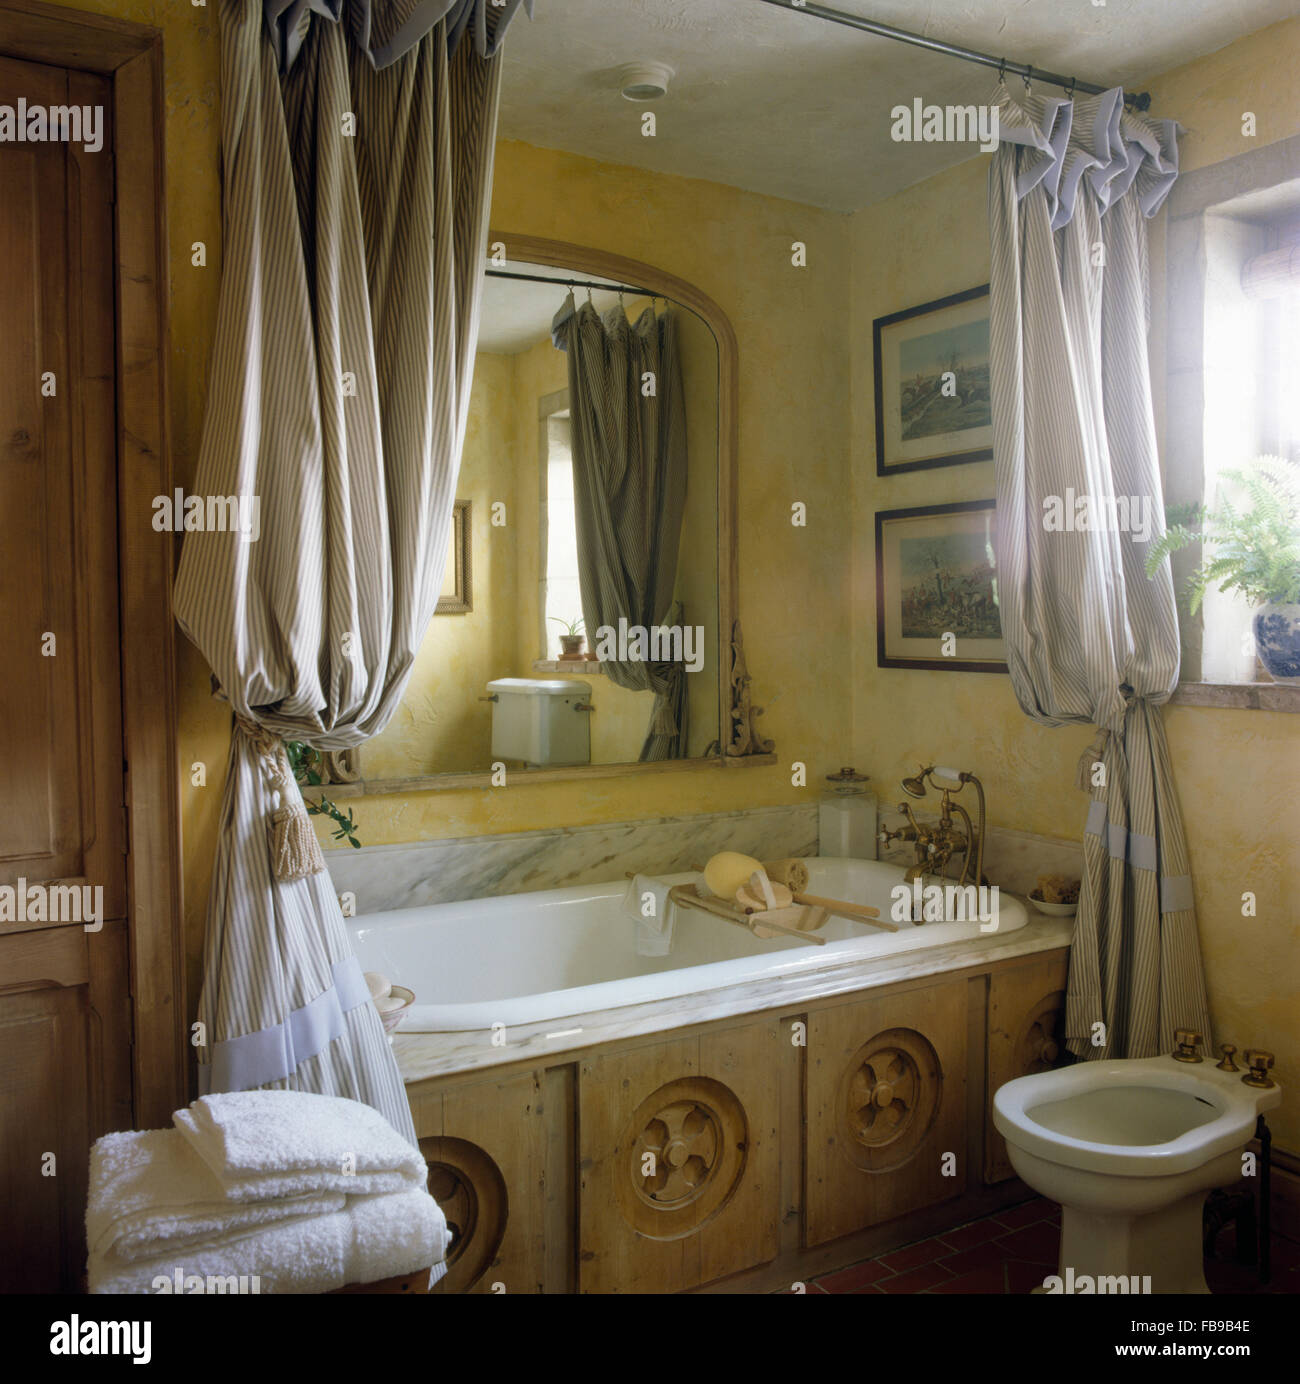 Striped Shower Curtains On Bath With Reclaimed Carved Wood Panel In  Eighties Bathroom With A Bidet